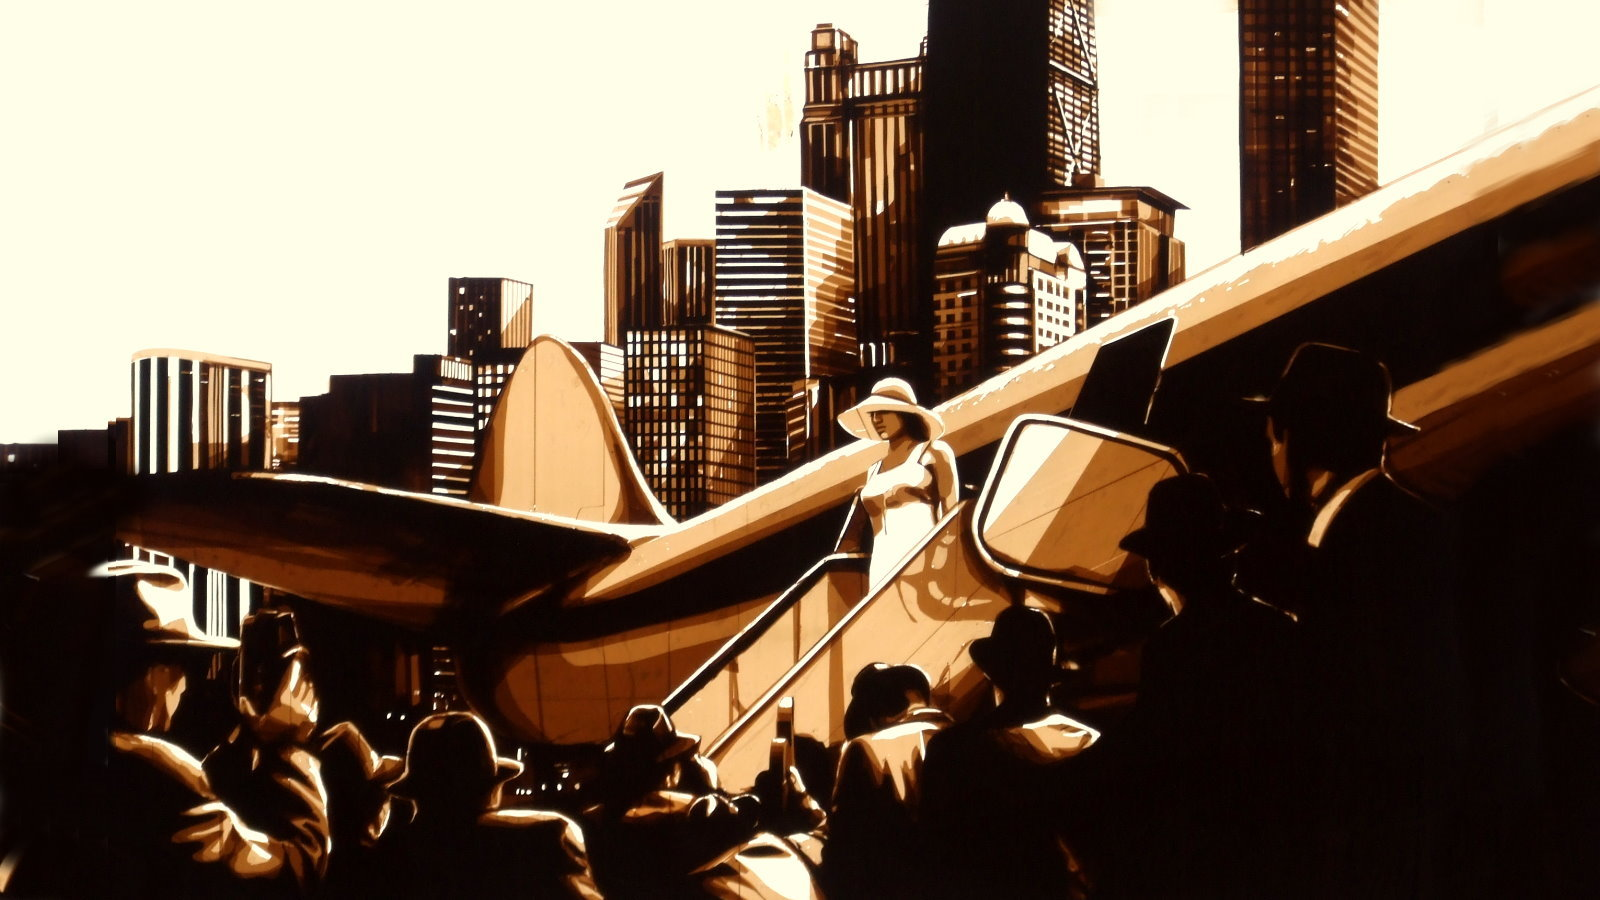 Art made of packing tape by Max Zorn, art du ruban, Kunst mit Klebeband, depicting woman and airplane in front of Chicago skyline